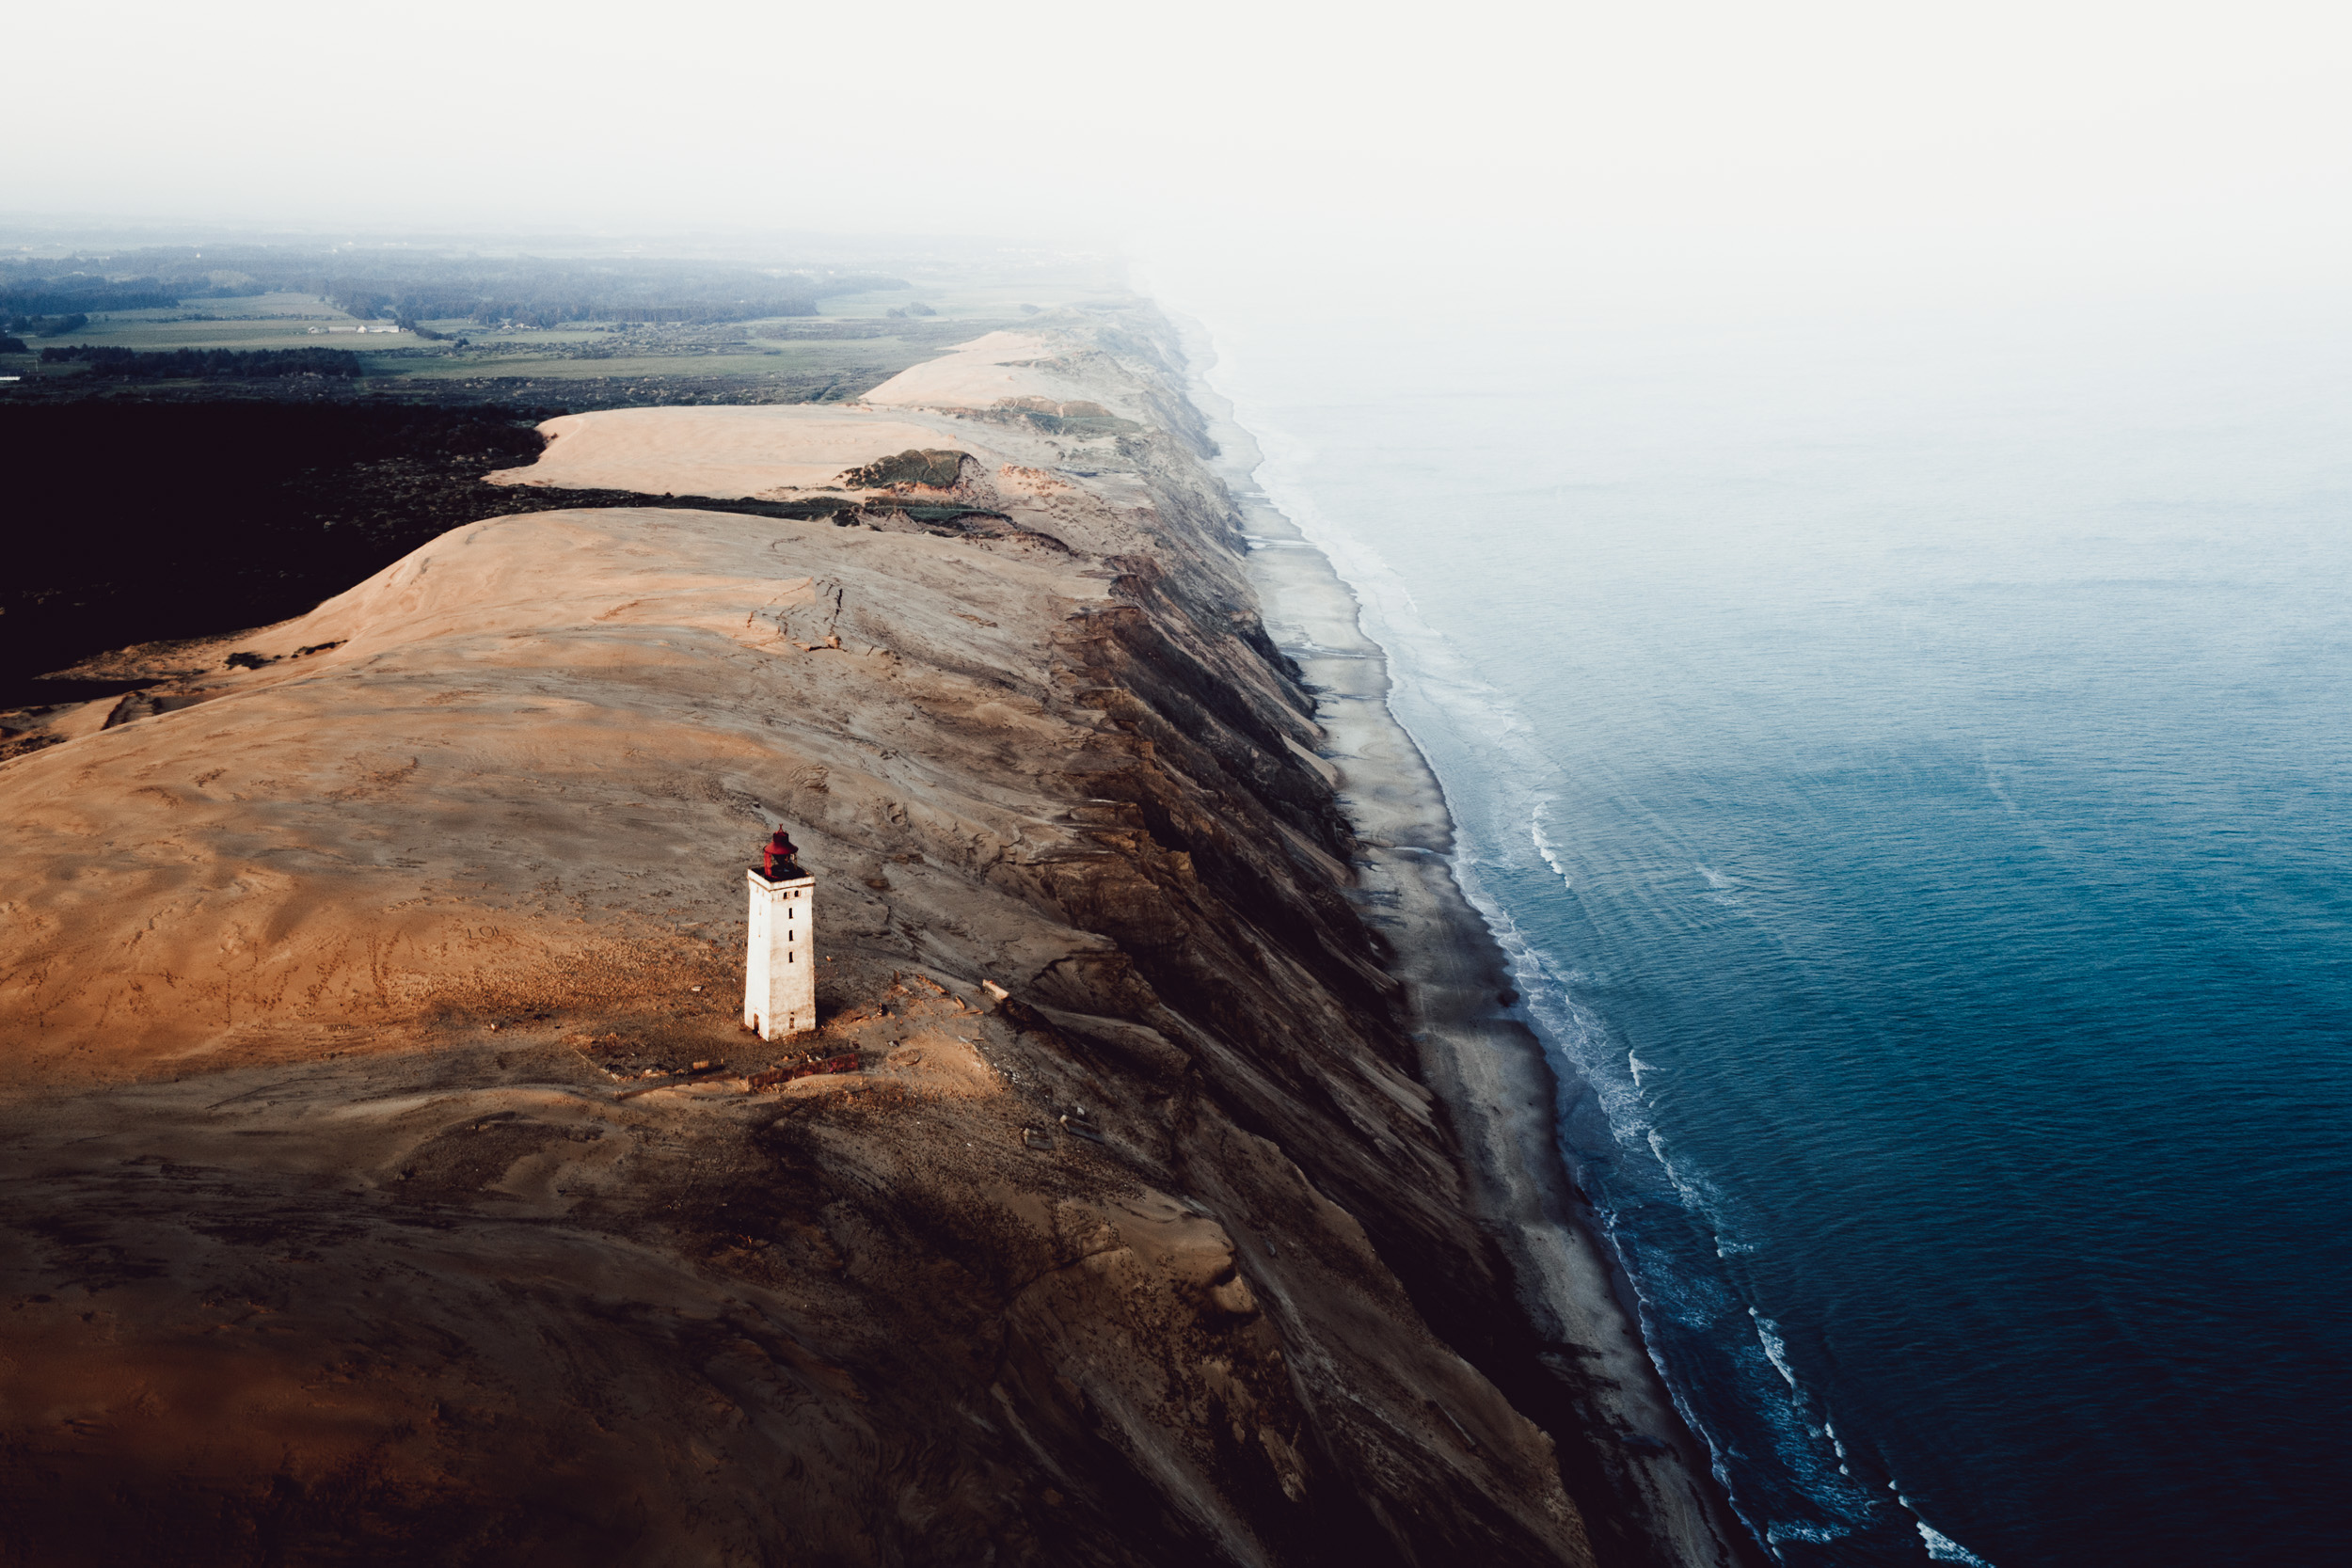 Picture shows old white lighthouse on sanddune near the ocean coast from above.